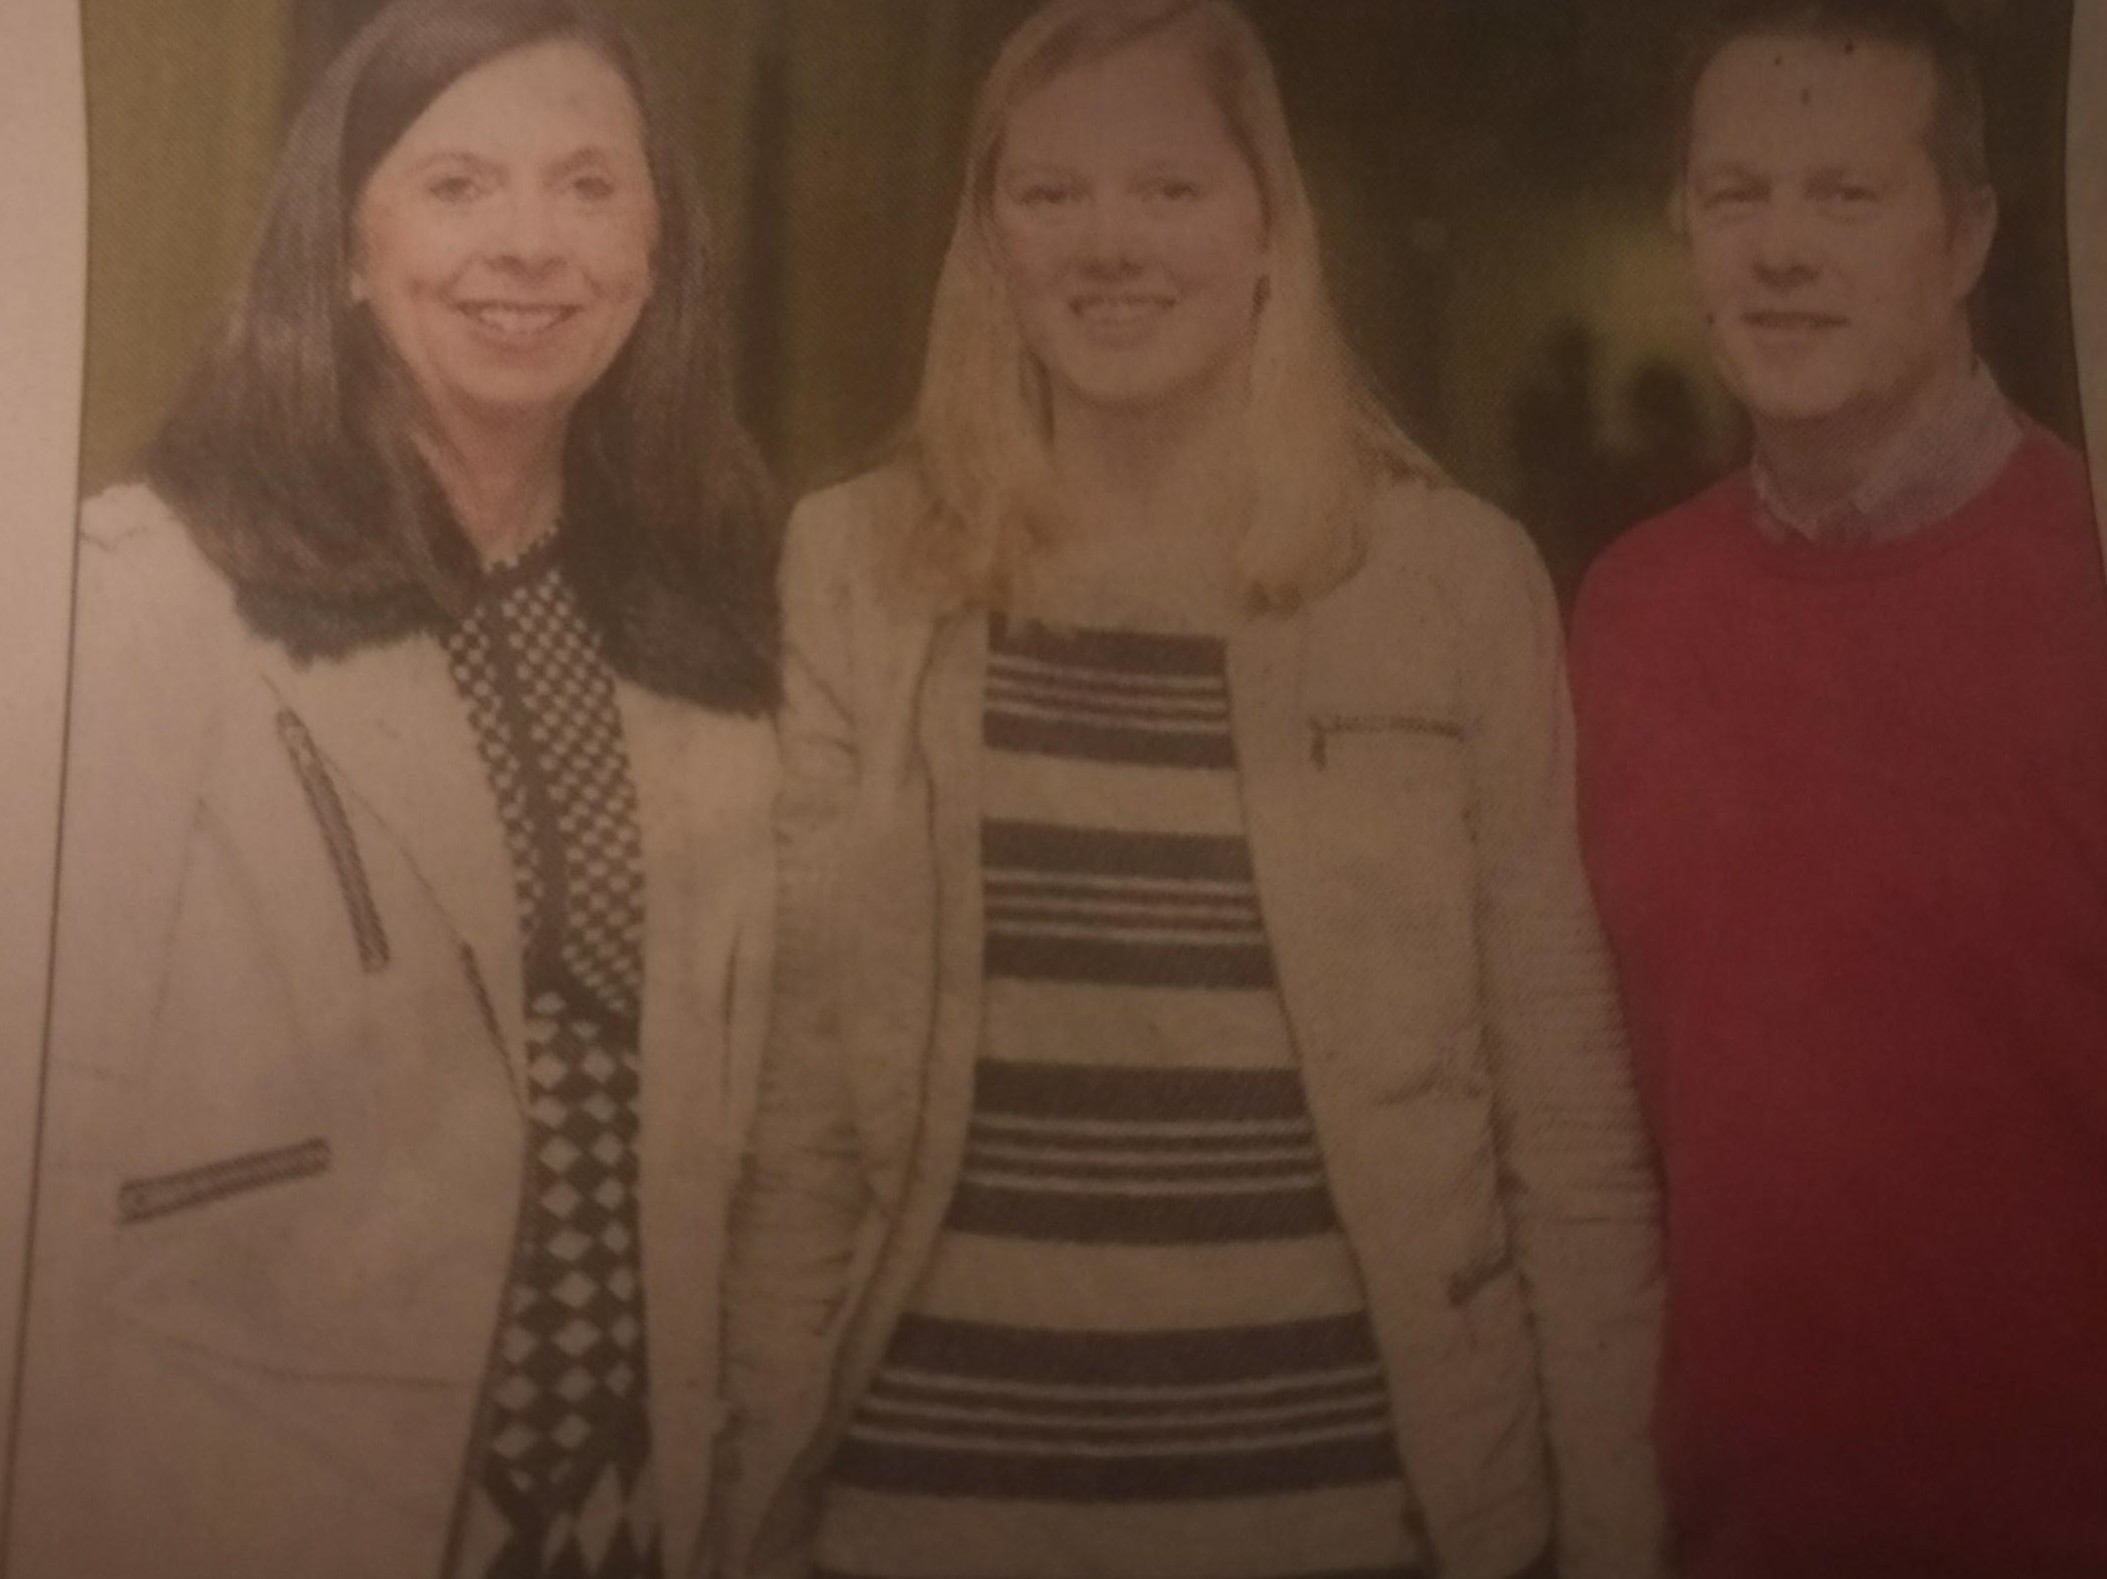 Abbie is studying BEd in education and psychology. Abbie is photographed with her mum and dad Grainne and Jonathon.